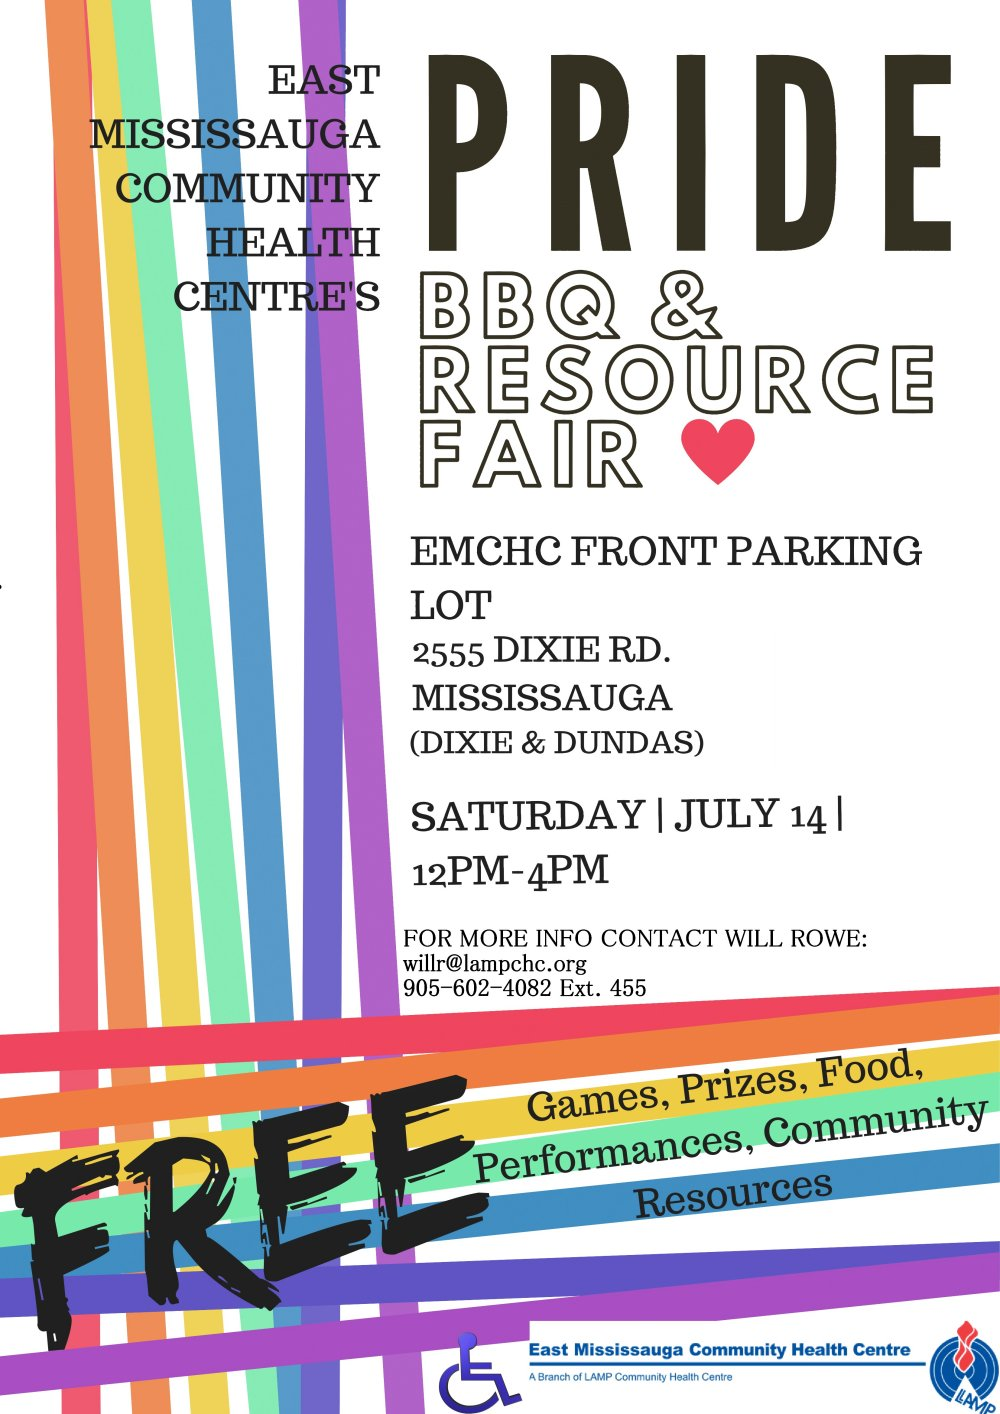 Pride BBQ Event 2018 Google image from http://www.lampchc.org/content/pride-celebration-and-resource-fair-east-mississauga/